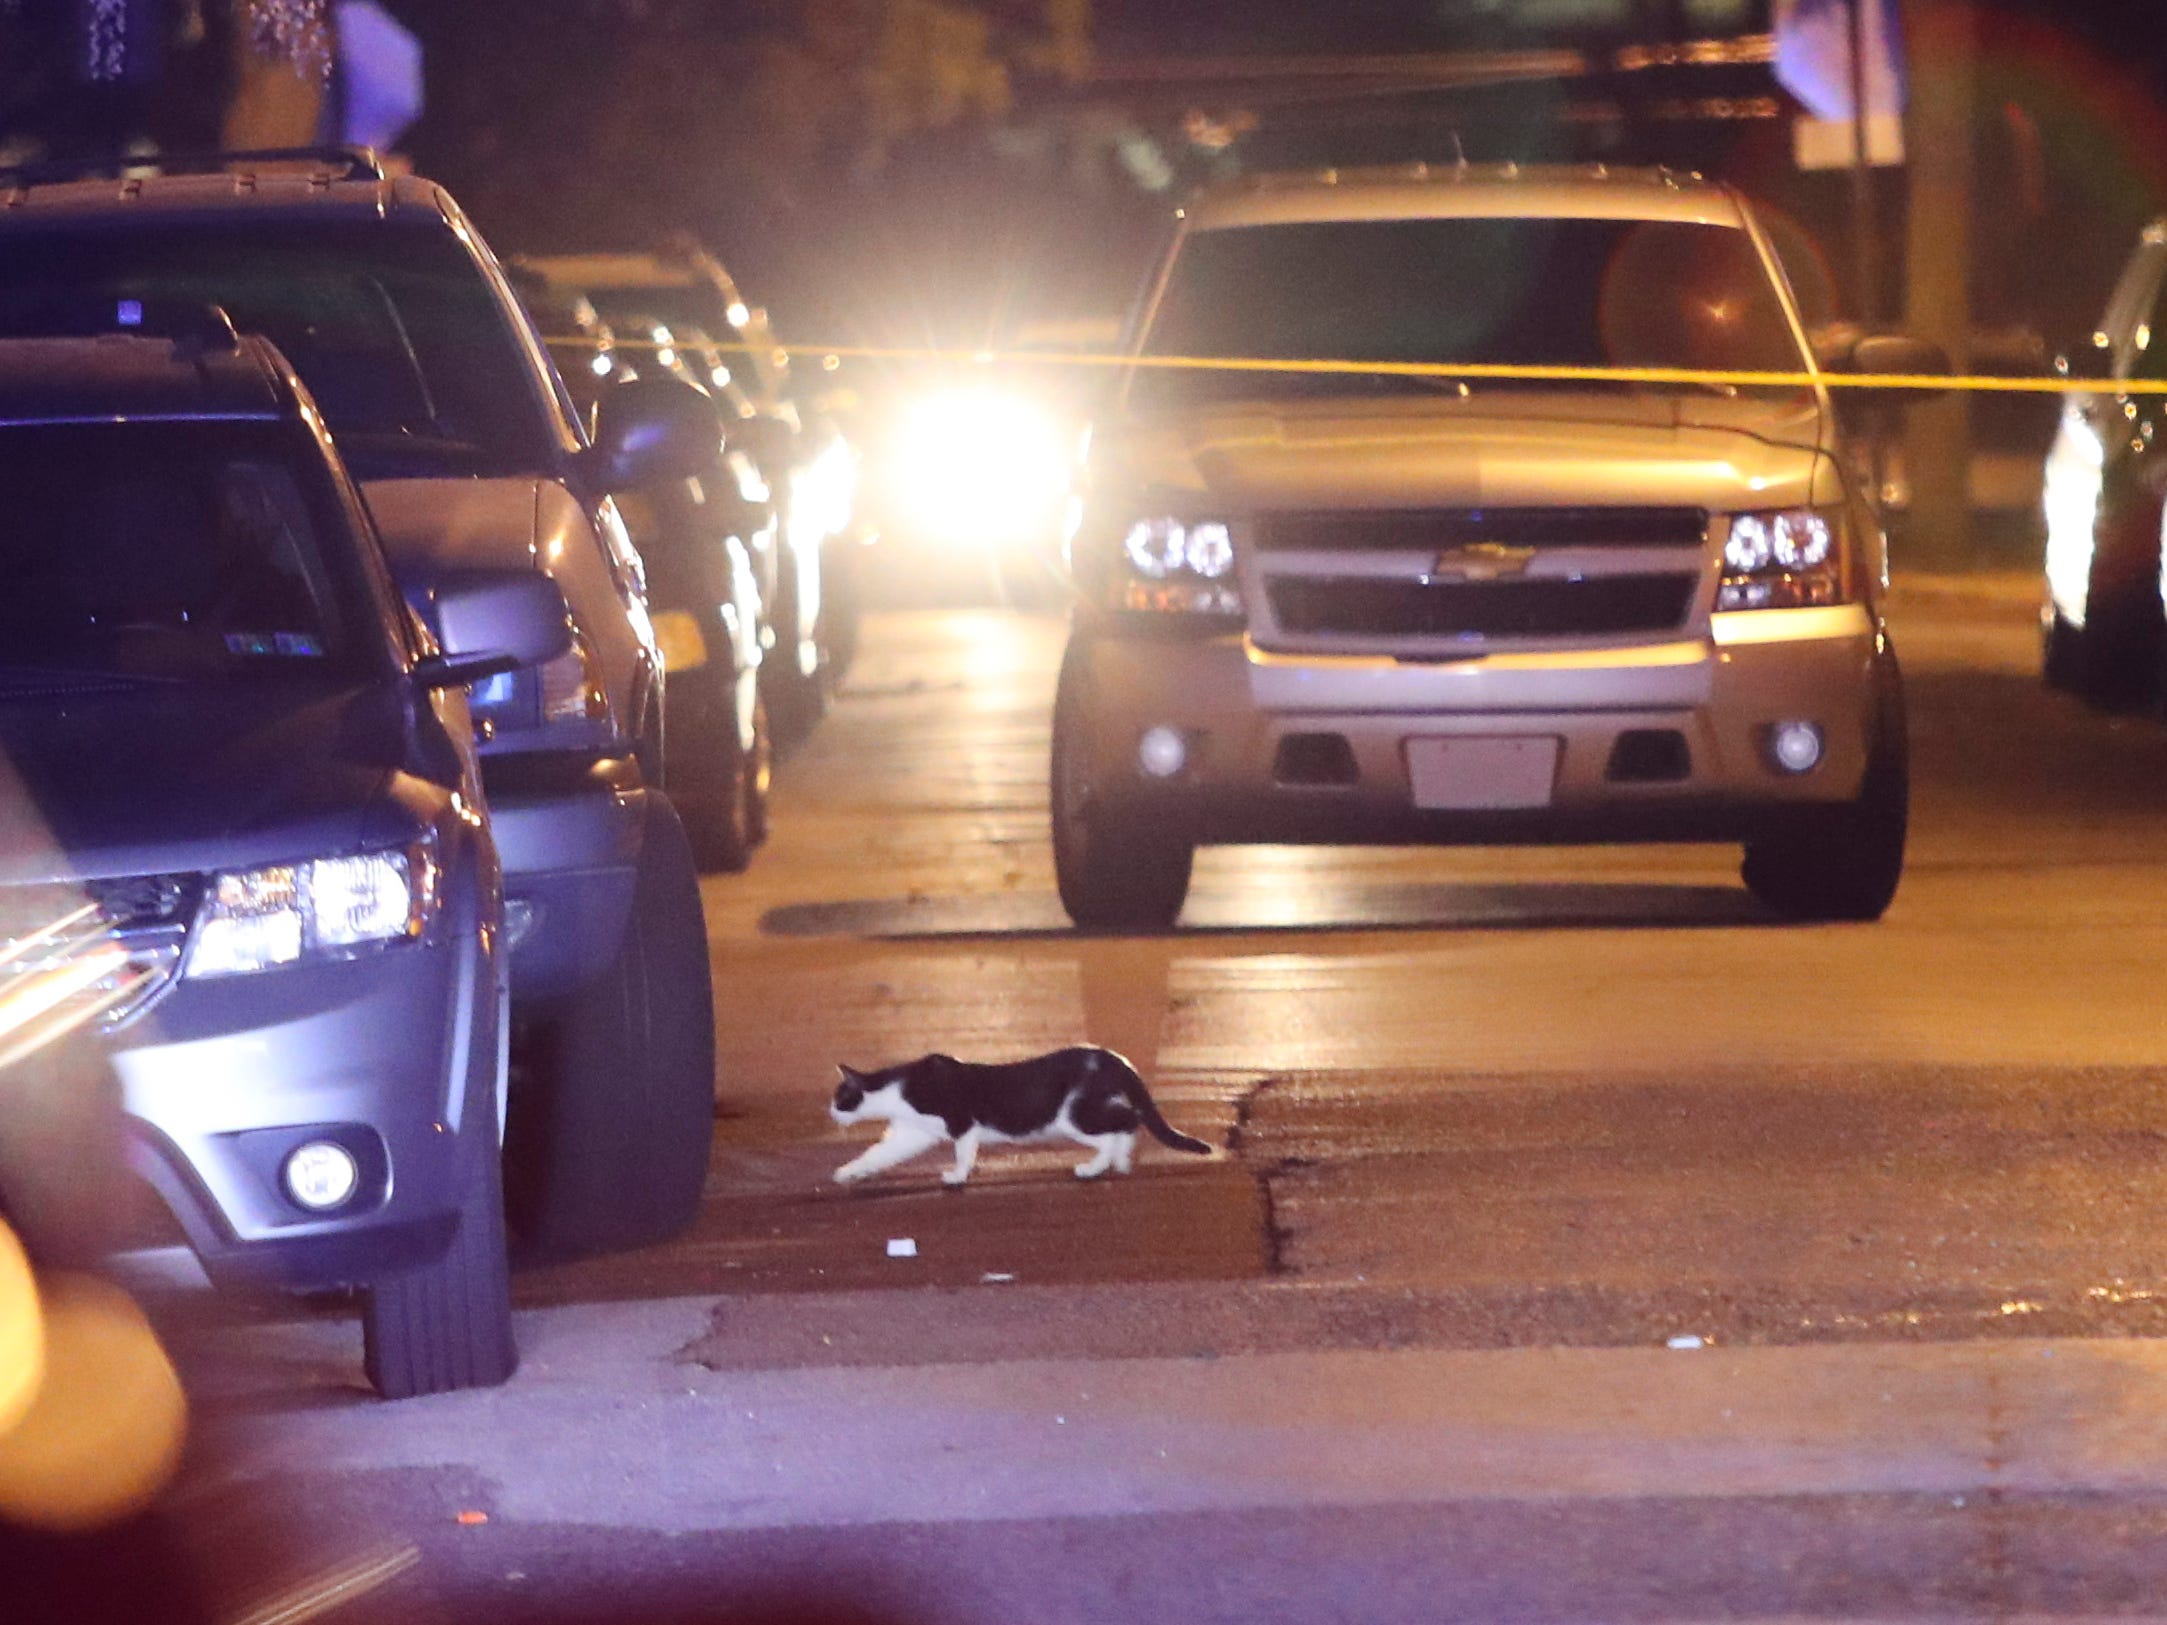 Wilmington police investigate a shooting reported about 10 p.m. in the area of Helen Chambers Park on Madison Street. Police had taped off Madison Street from W. 4th Street to W. 7th Street but concentrated in the 600 block in and along the park.